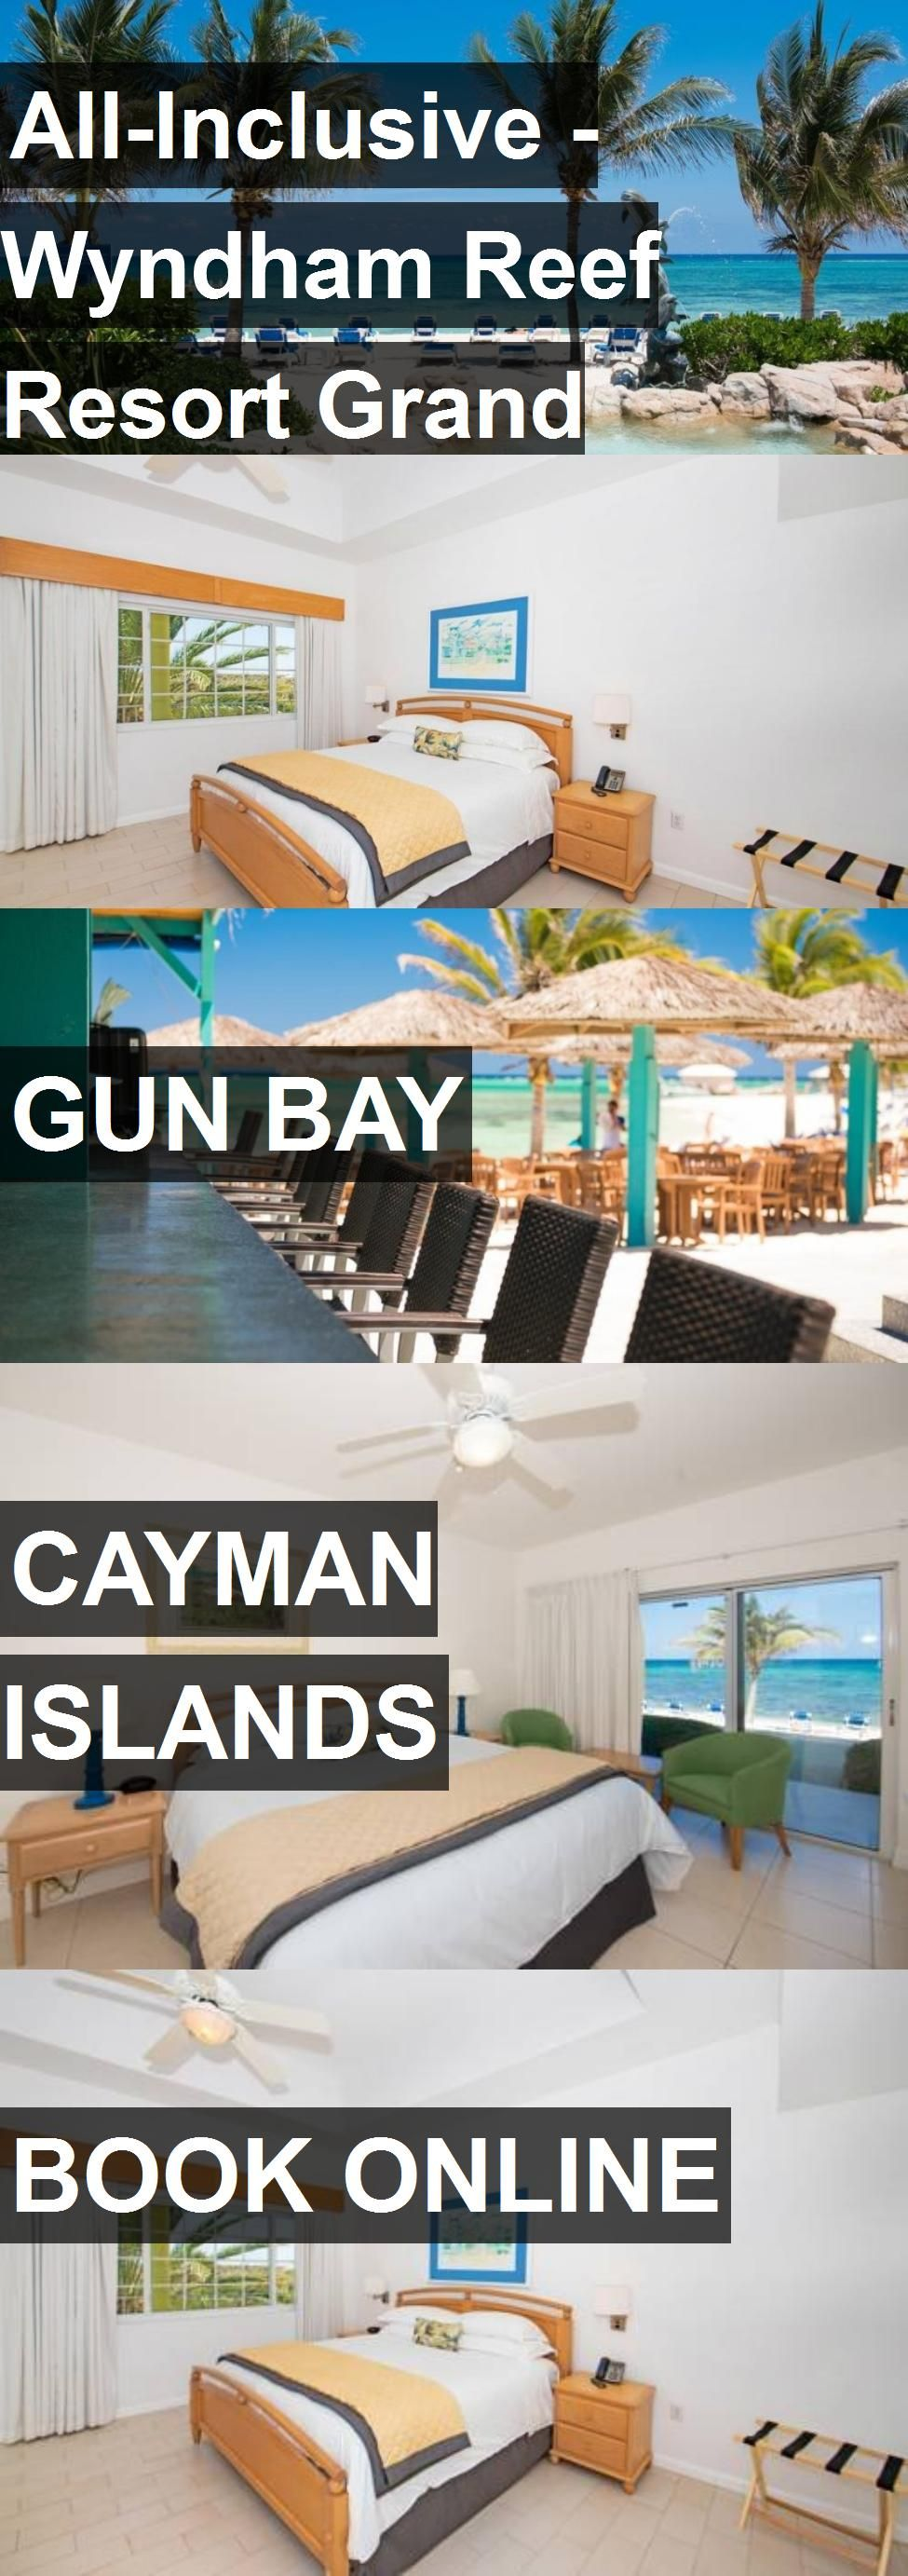 All Inclusive Wyndham Reef Resort On Cayman Islands For: Pin On Hotels And Appartments